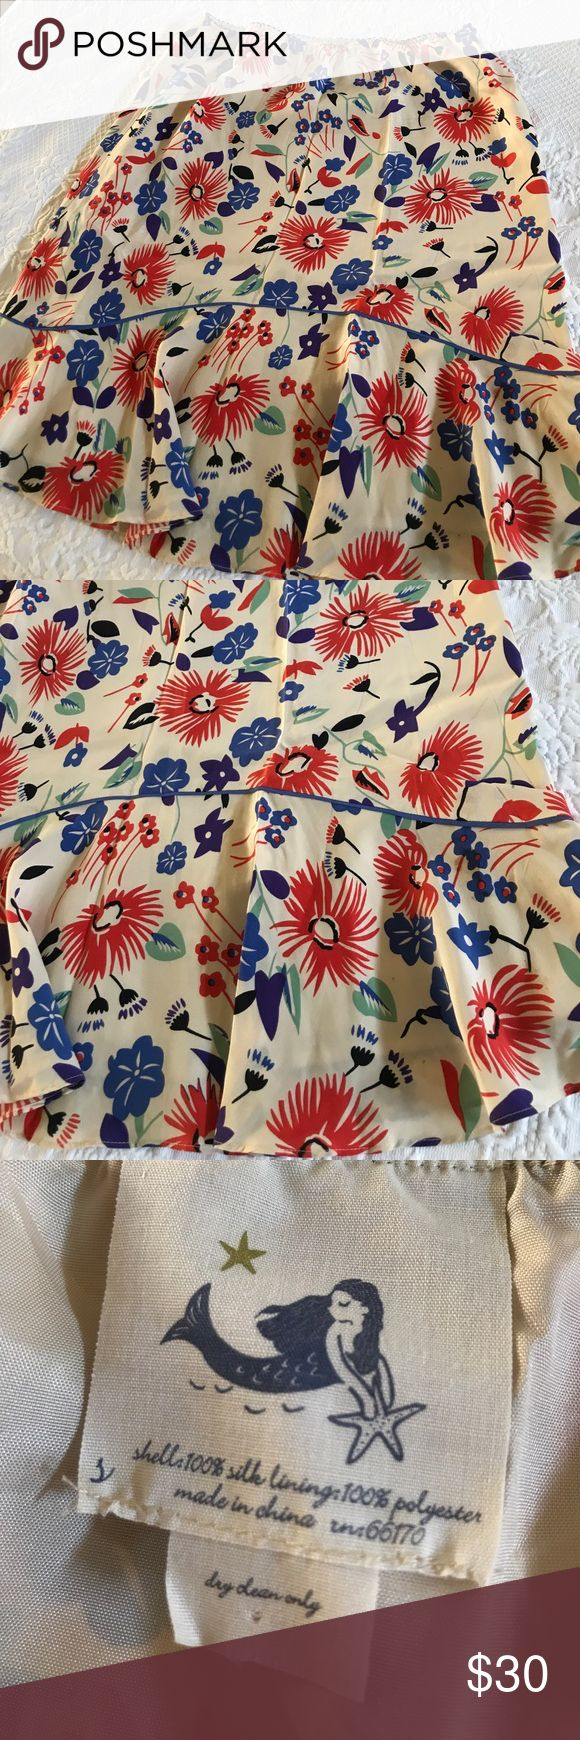 Anthropologie multi color skirt Super flattering and comfortable silk skirt from Anthropologie, I believe this is a medium, I'm an 8 and it fits. The colors are gorgeous and mermaid type style so flattering. In excellent condition. Fully lined. Anthropologie Skirts Midi